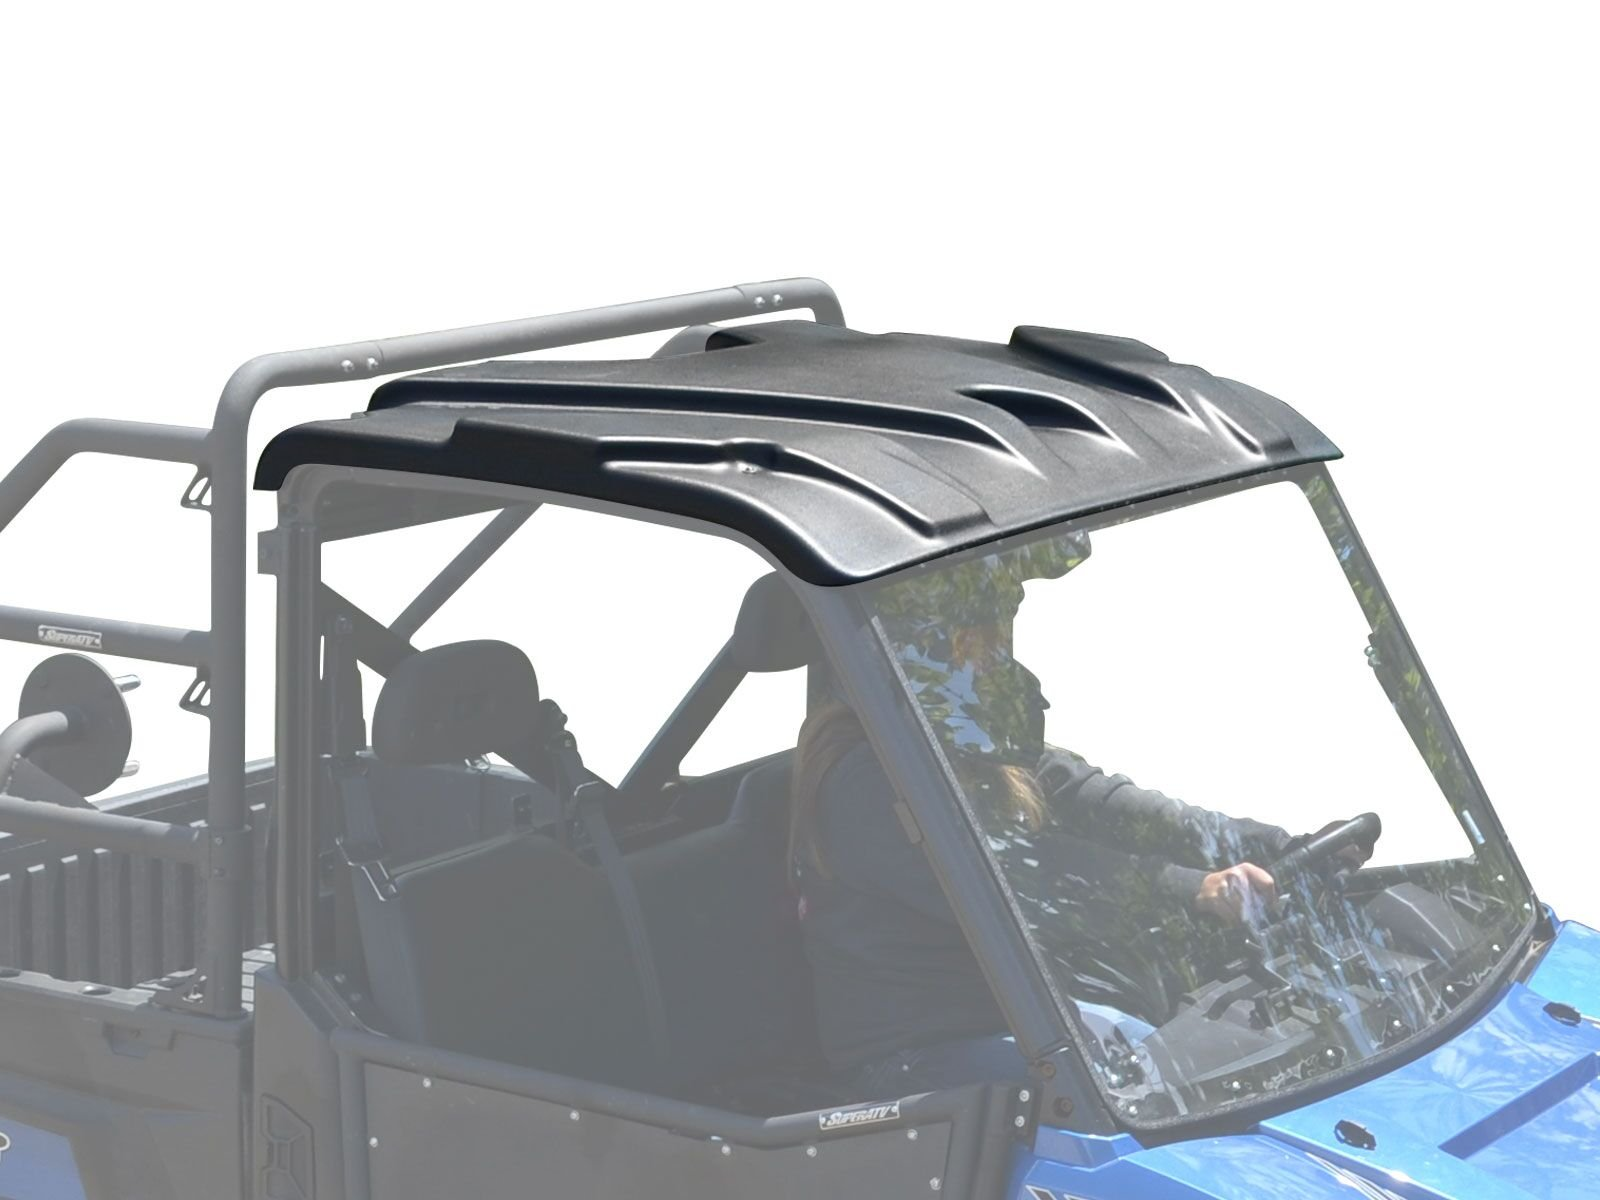 SuperATV Heavy Duty Plastic Roof for Polaris Ranger Full Size XP 570/900 / 1000 / Diesel 2 Seater (SEE FITMENT) - Easy to Install!